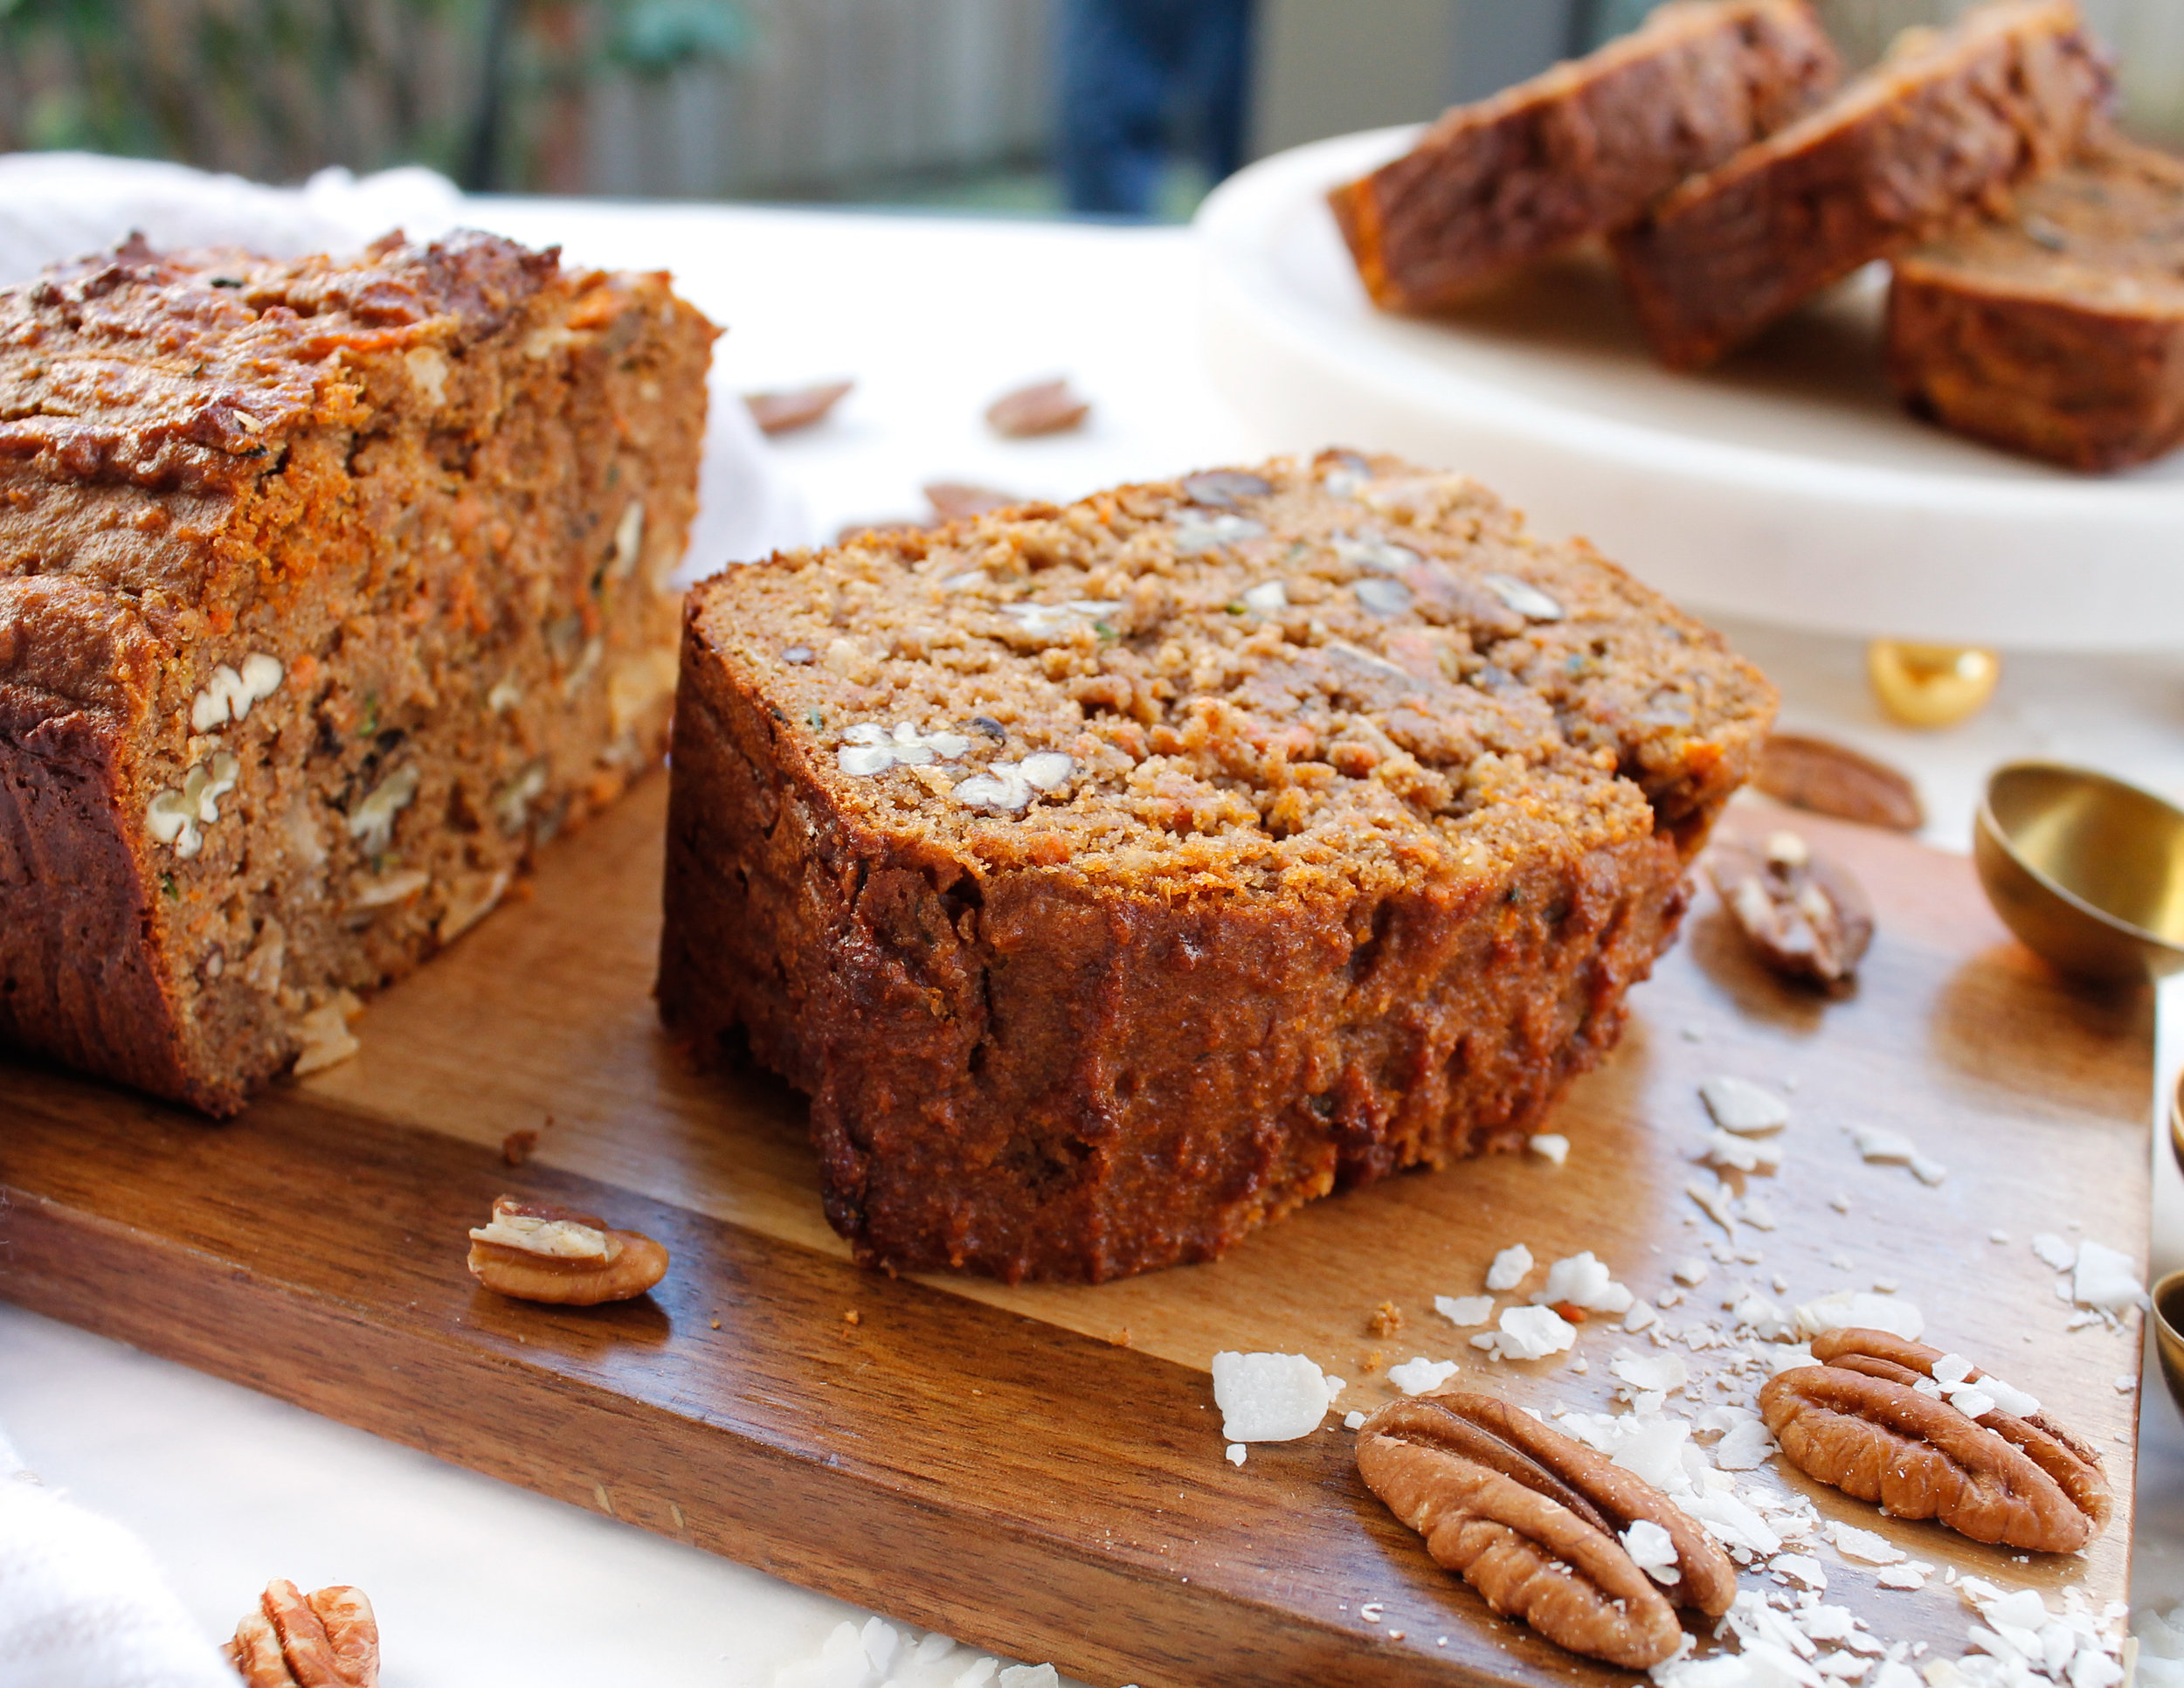 grain free morning glory bread || This paleo morning glory loaf is grain free, gluten free, dairy free, refined sugar free AND Specific Carbohydrate Diet friendly! Made with wholesome, REAL ingredients, it's sure to nourish your body and satisfy your sweet tooth. The perfect healthy breakfast, snack or sweet treat! #paleobread #specificcarbohydratediet #scddiet #paleoloaf